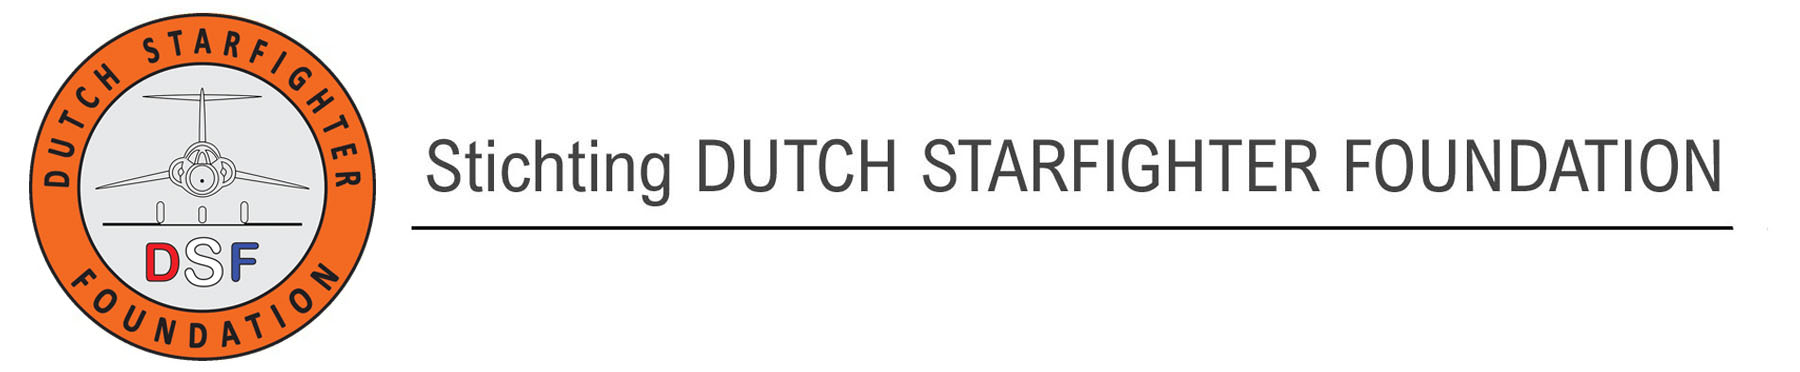 Dutch Starfighter Foundation